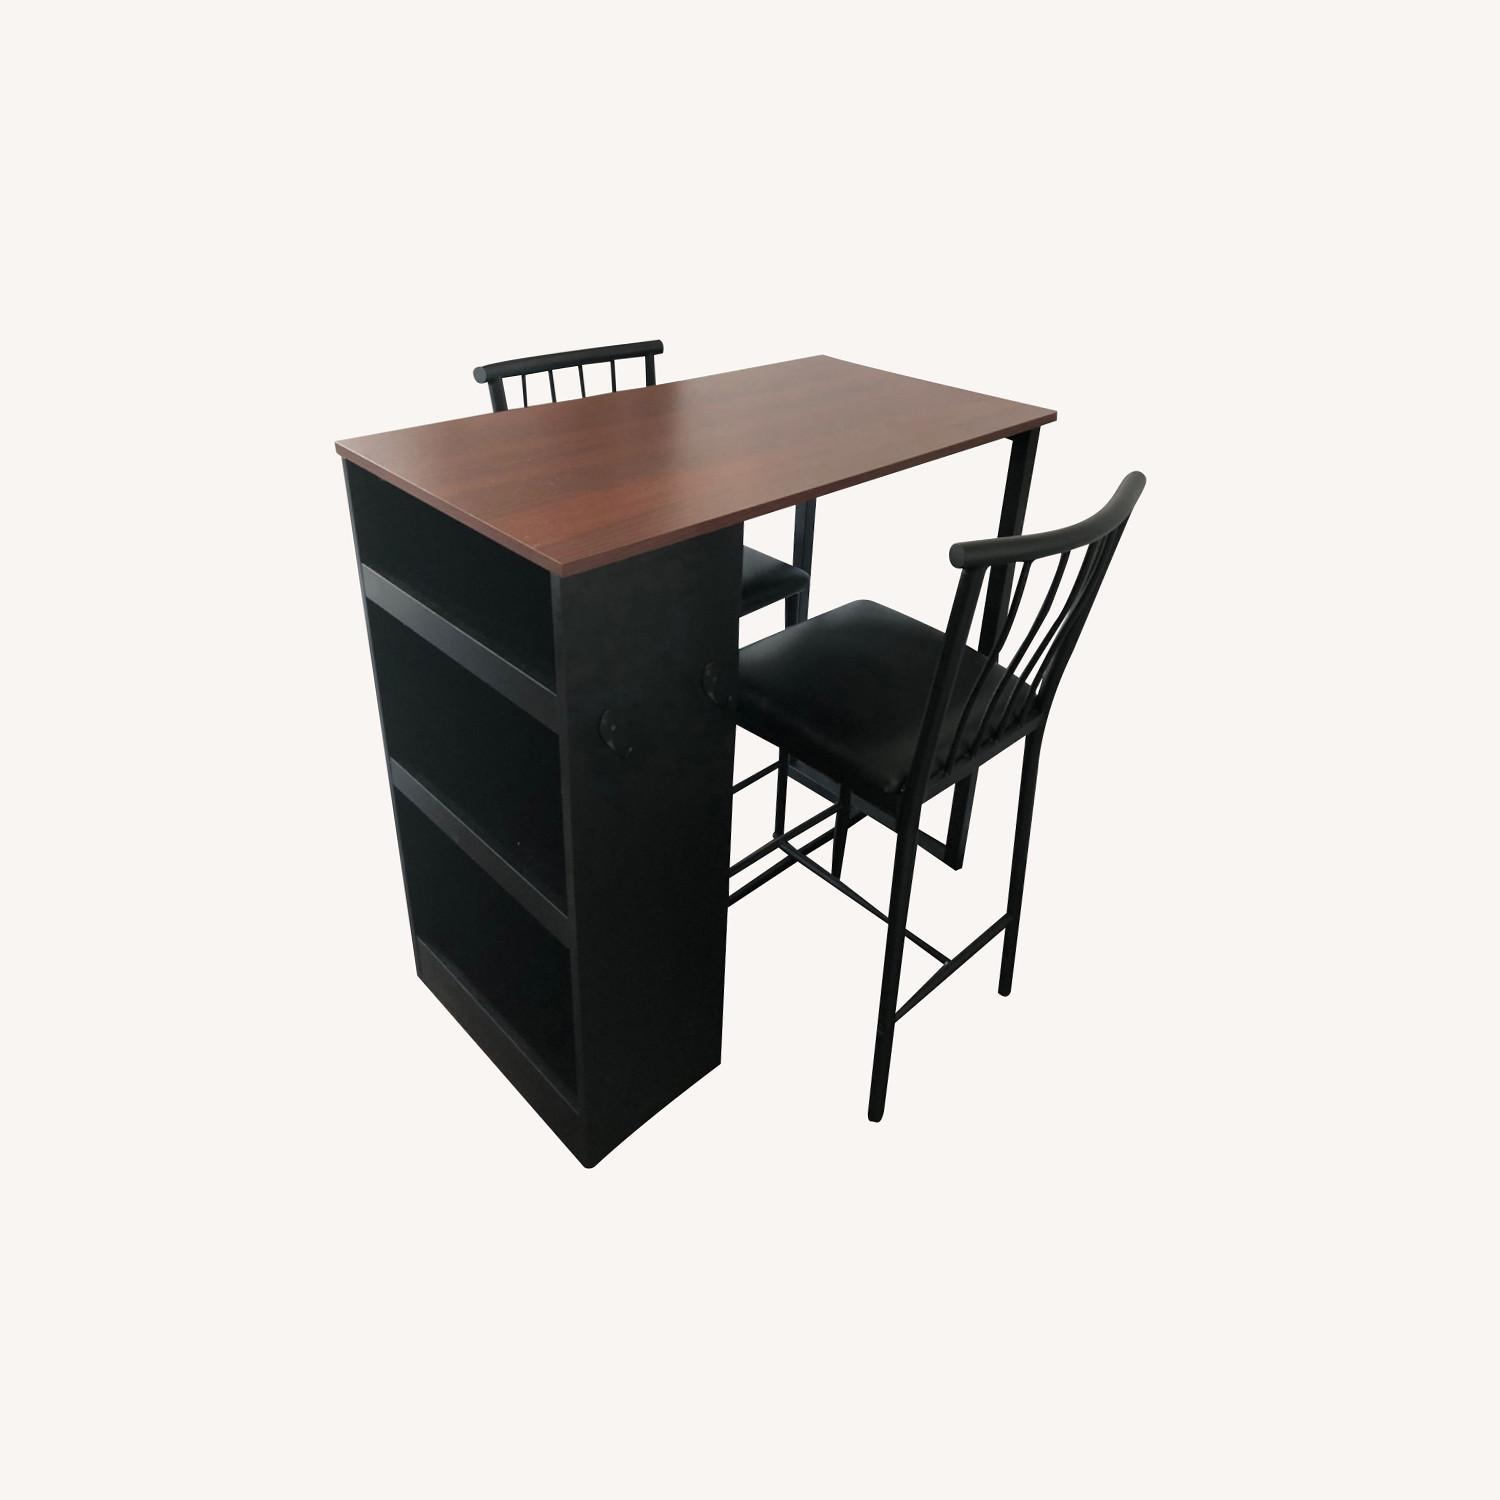 Wayfair Counter Height Table and Stools - image-0